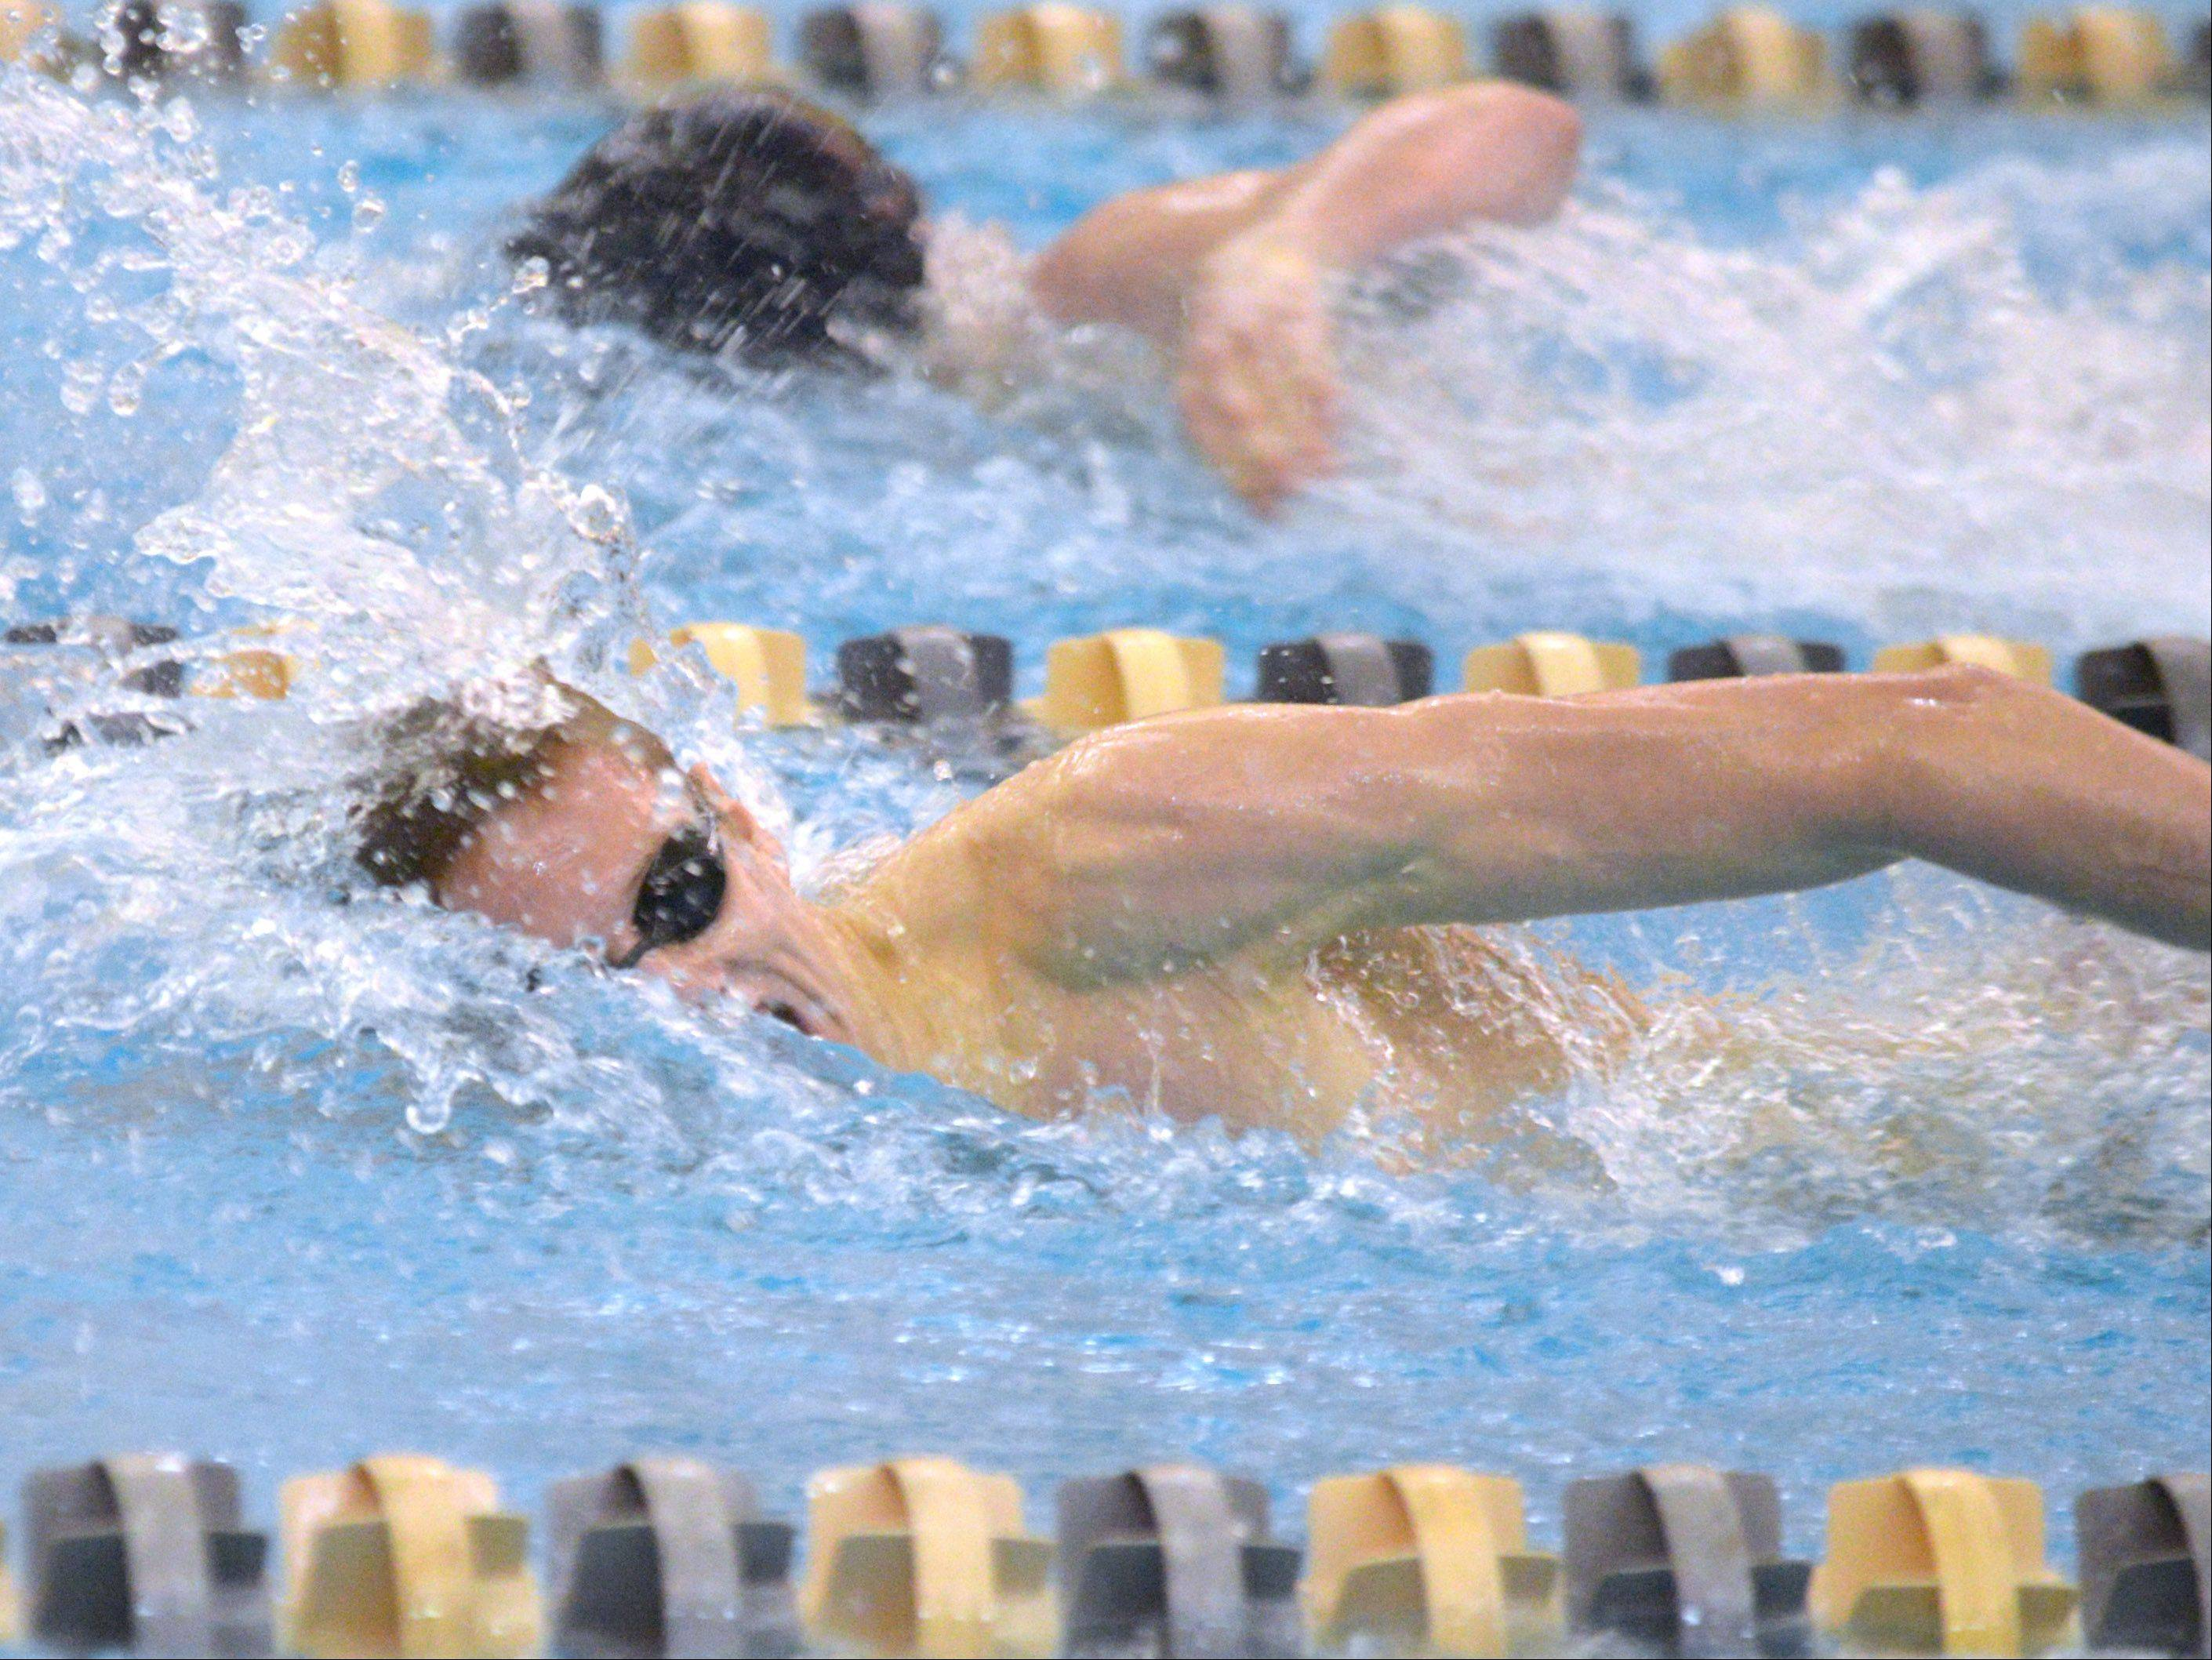 Sam Hiler of Naperville North swins the 200 free during the Neuqua Valley boys swimming sectional in Naperville Saturday.